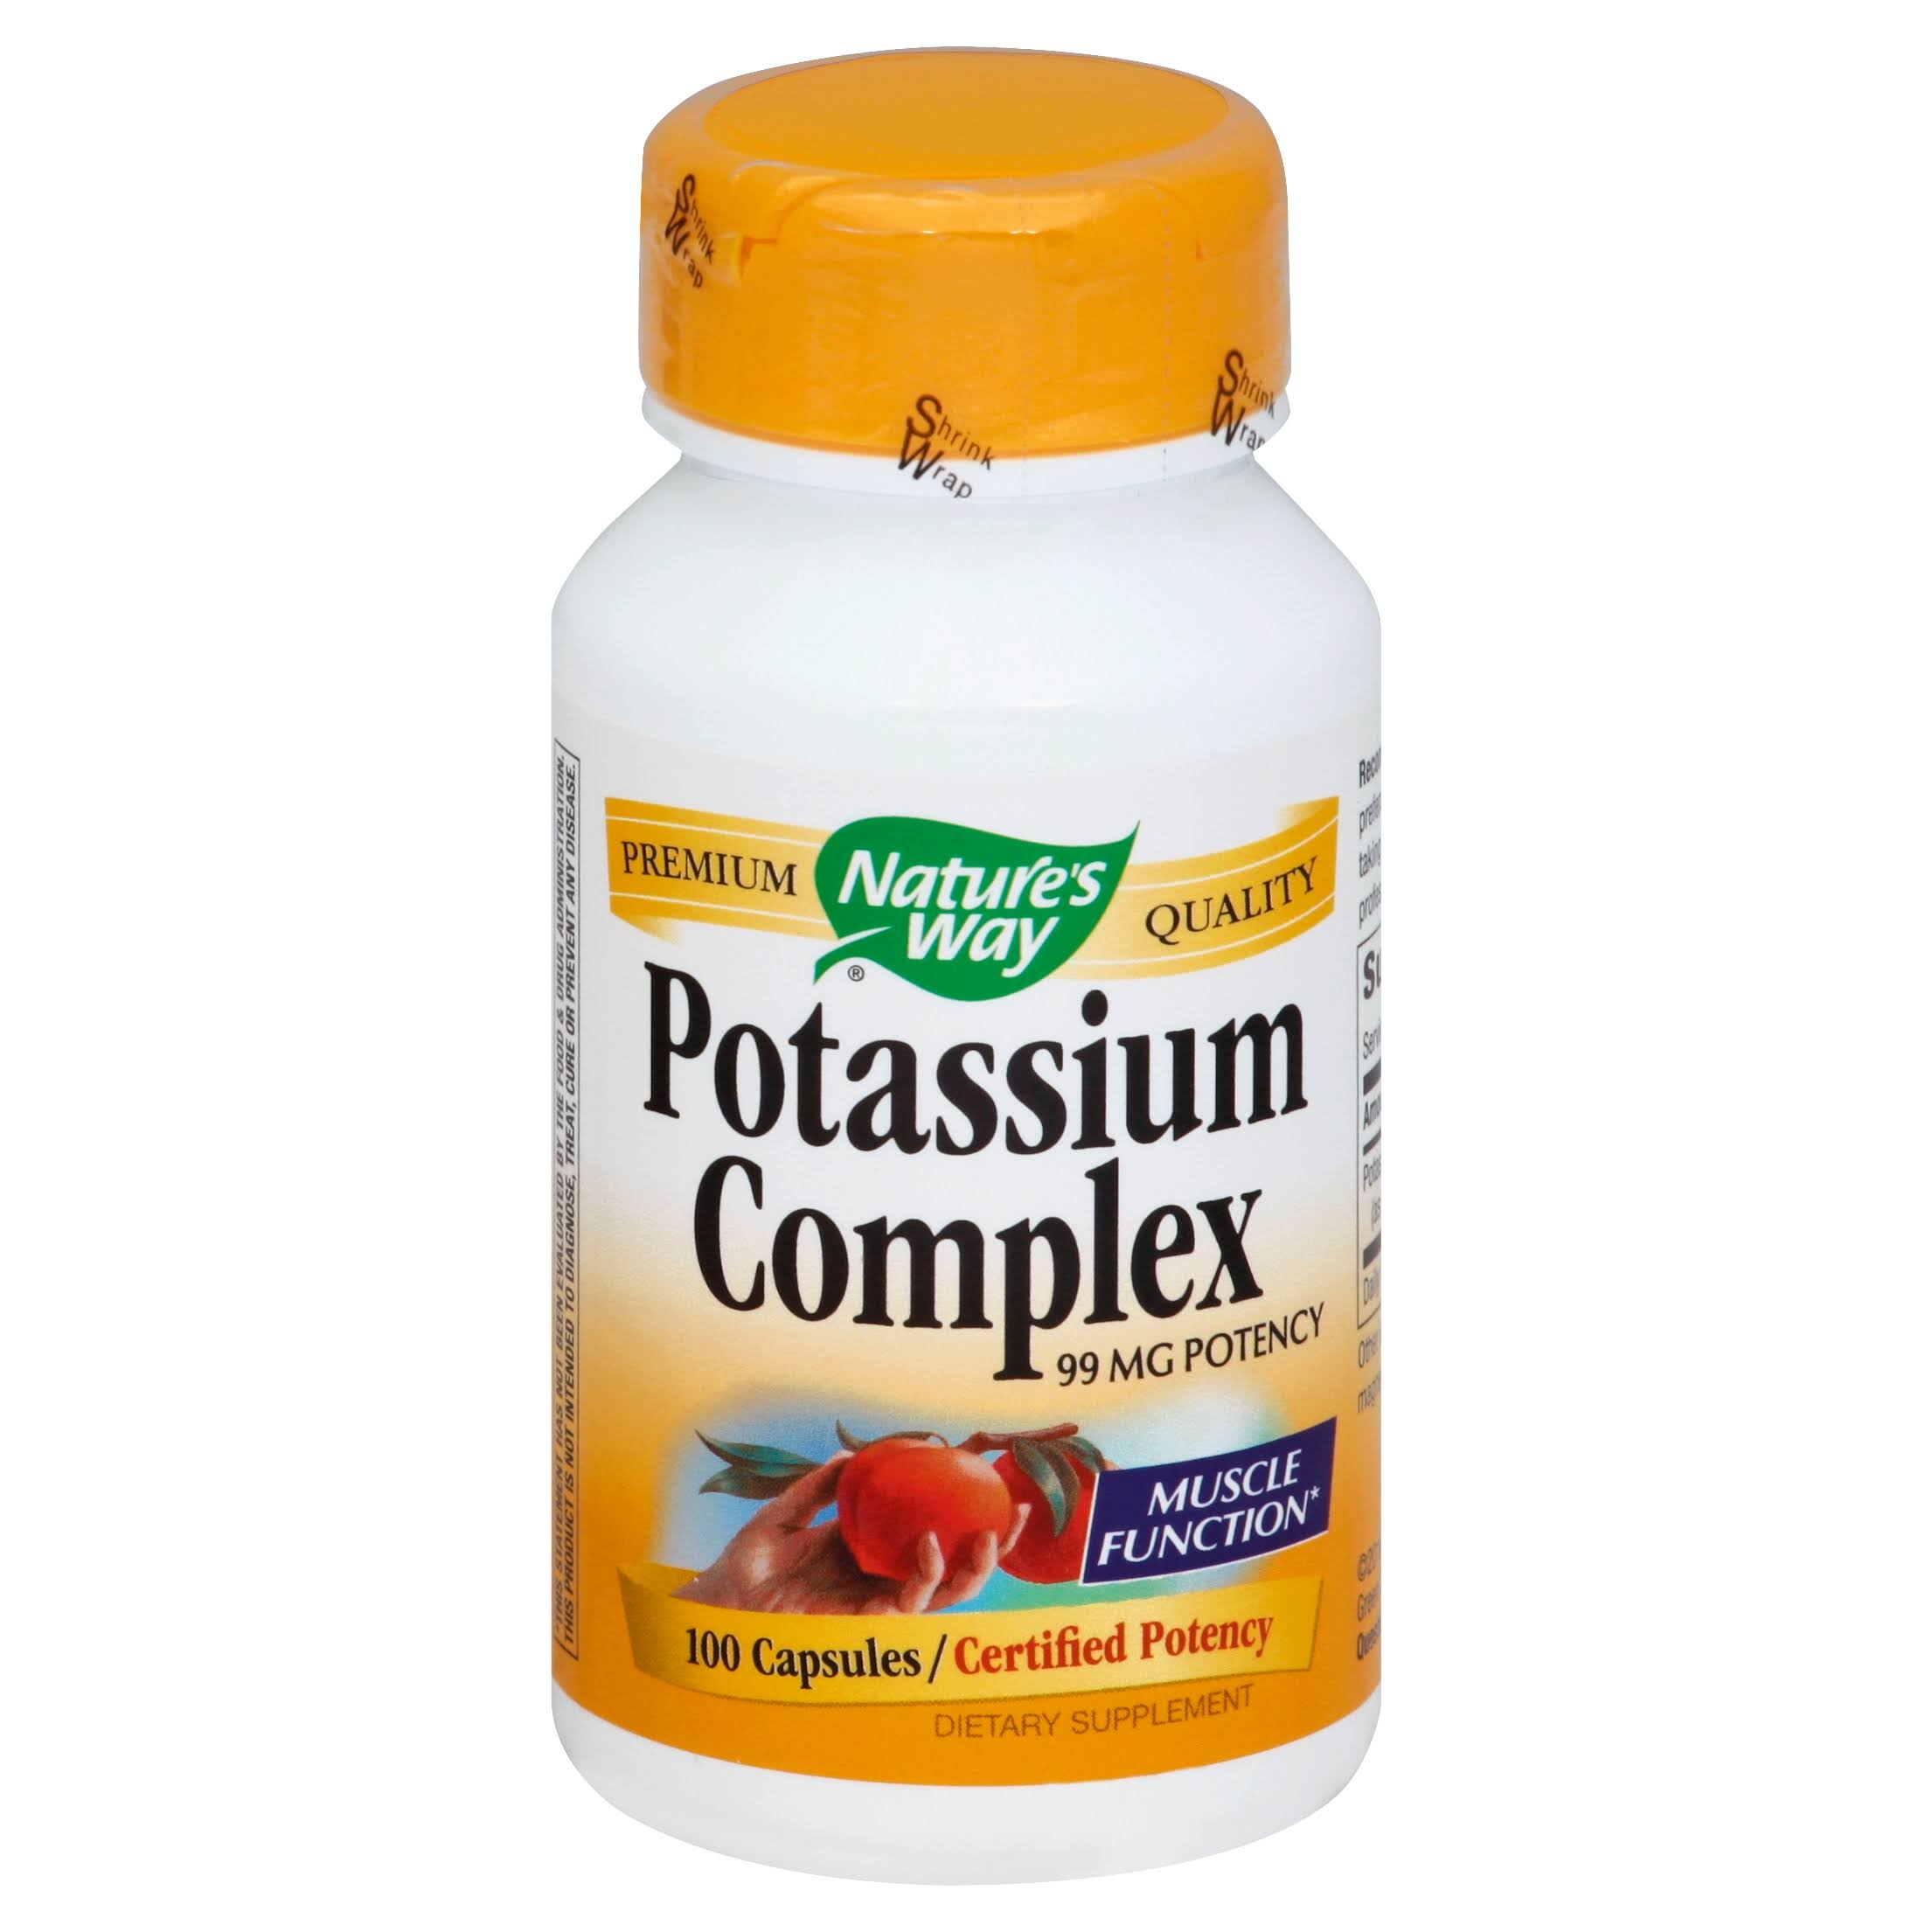 Nature's Way Potassium Complex Dietary Supplement - 100 Count